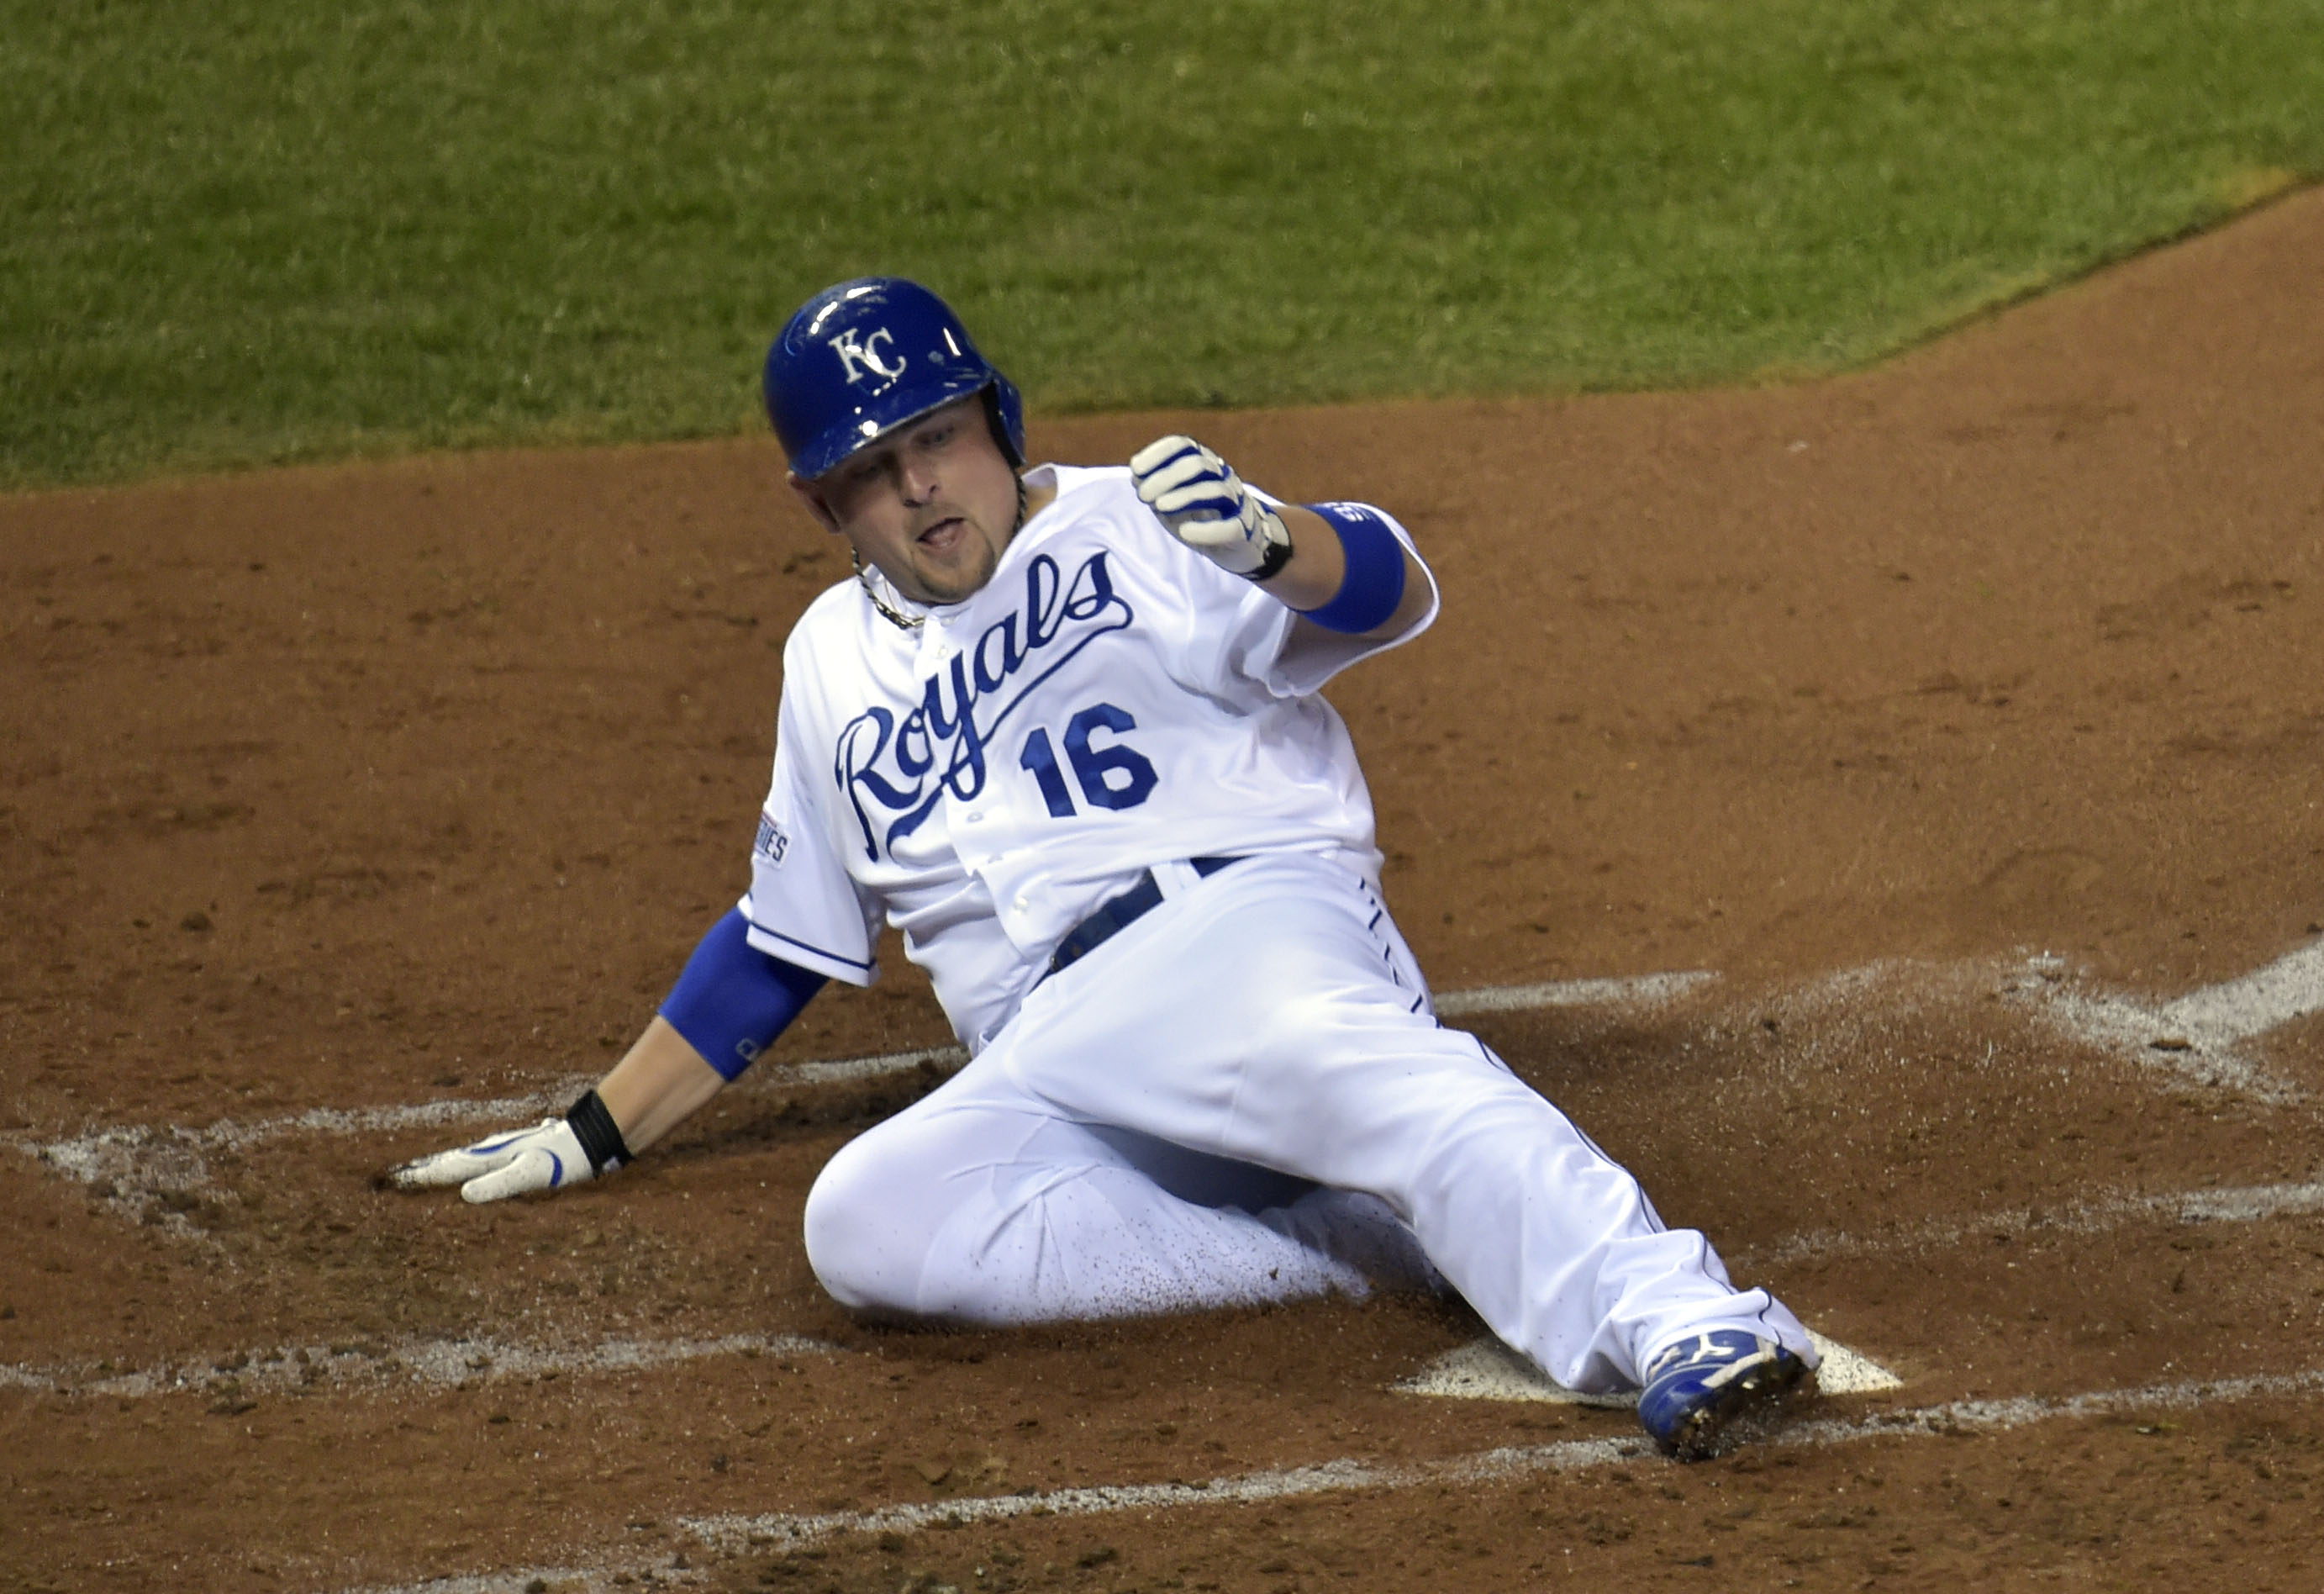 Billy Butler scores a run against the Giants during game seven. (USAT)